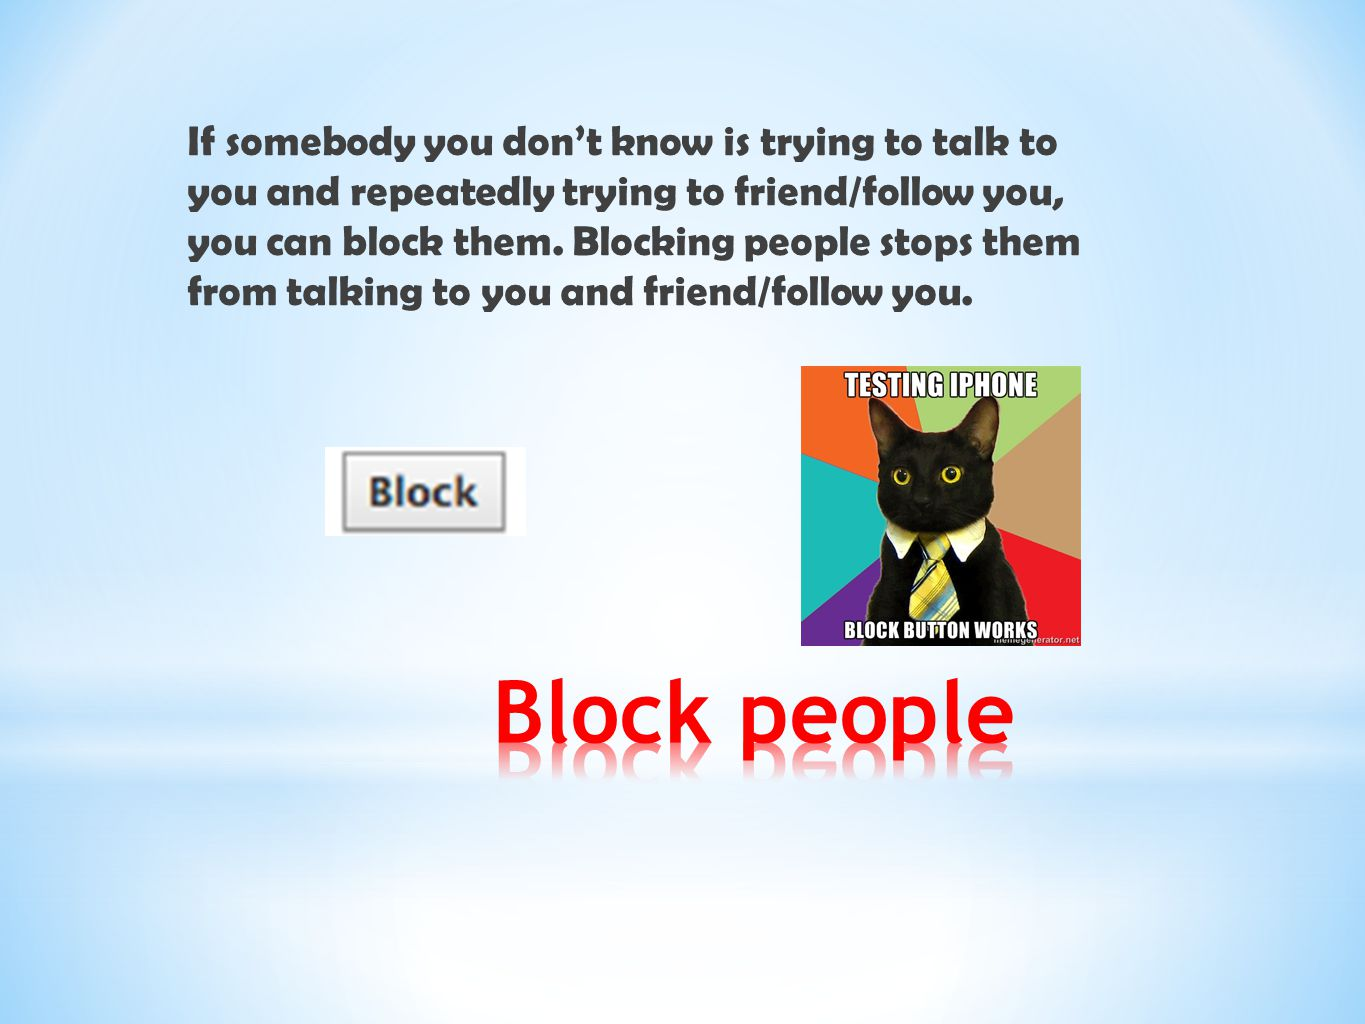 If somebody you don't know is trying to talk to you and repeatedly trying to friend/follow you, you can block them. Blocking people stops them from talking to you and friend/follow you.